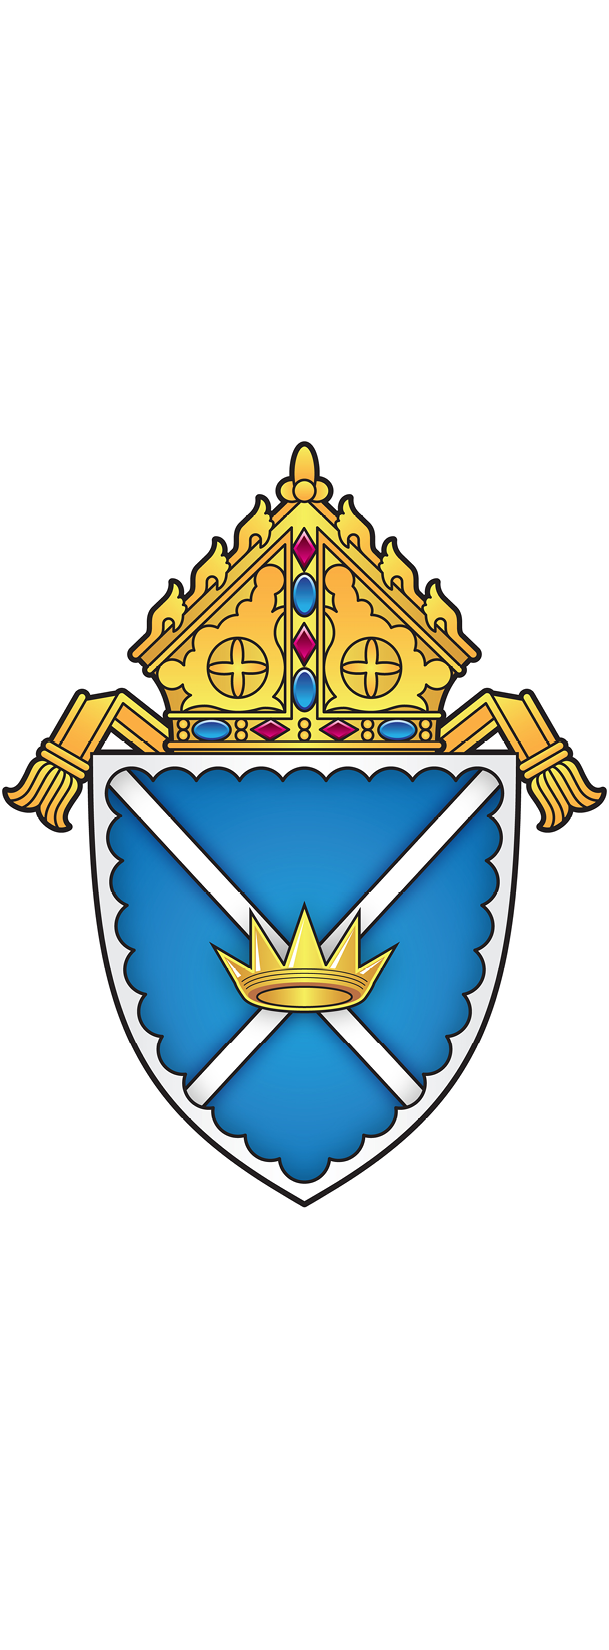 Diocesan Crest 2 to 1